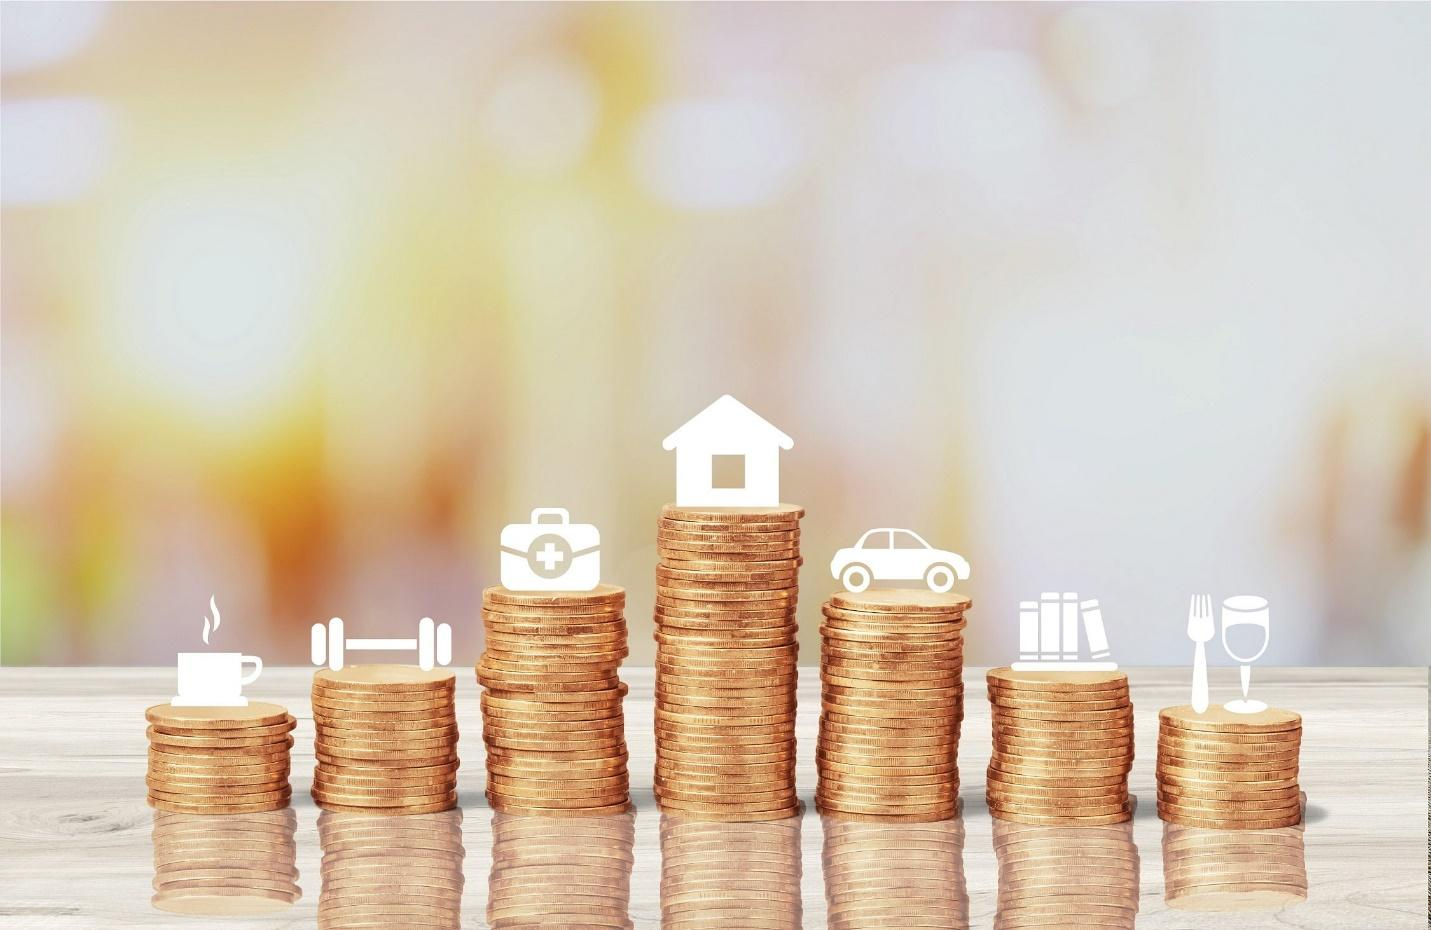 Uses of Consumer Loans